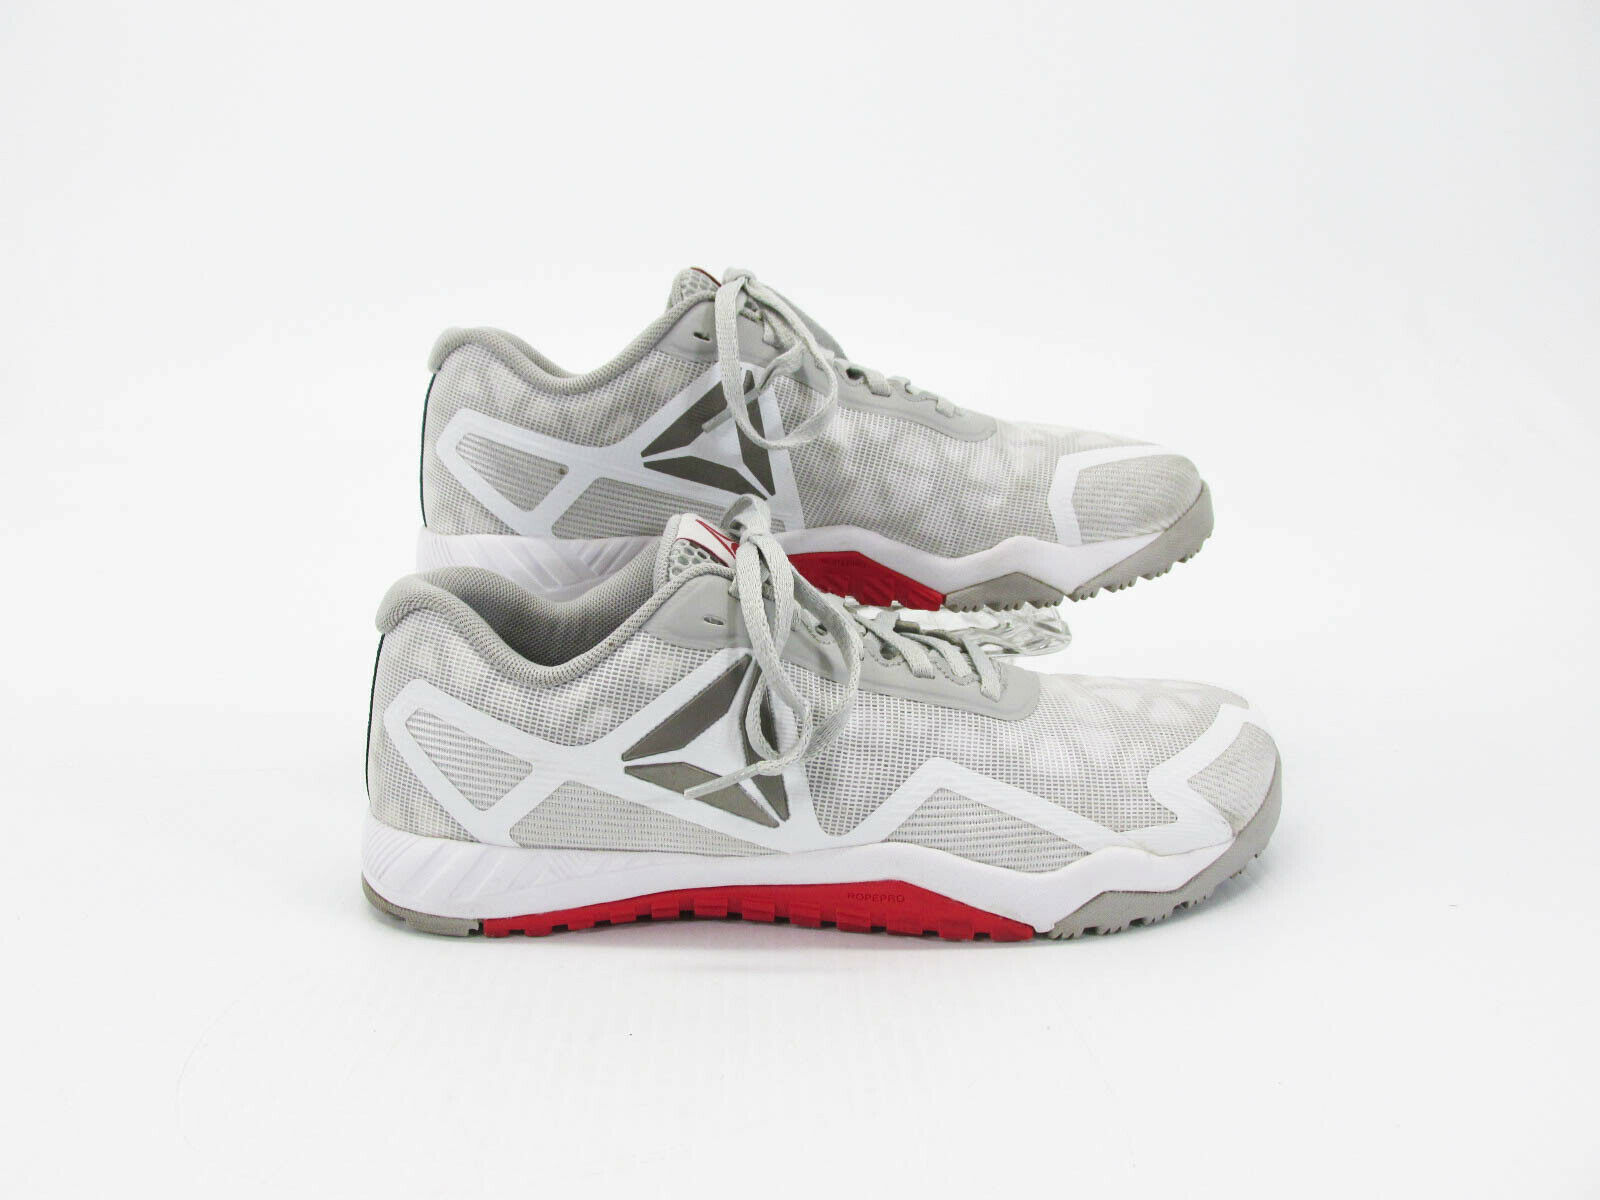 Reebok ROS Workout 2.0 Men White Athletic Training shoes Size 7.5M Pre Owned QJ